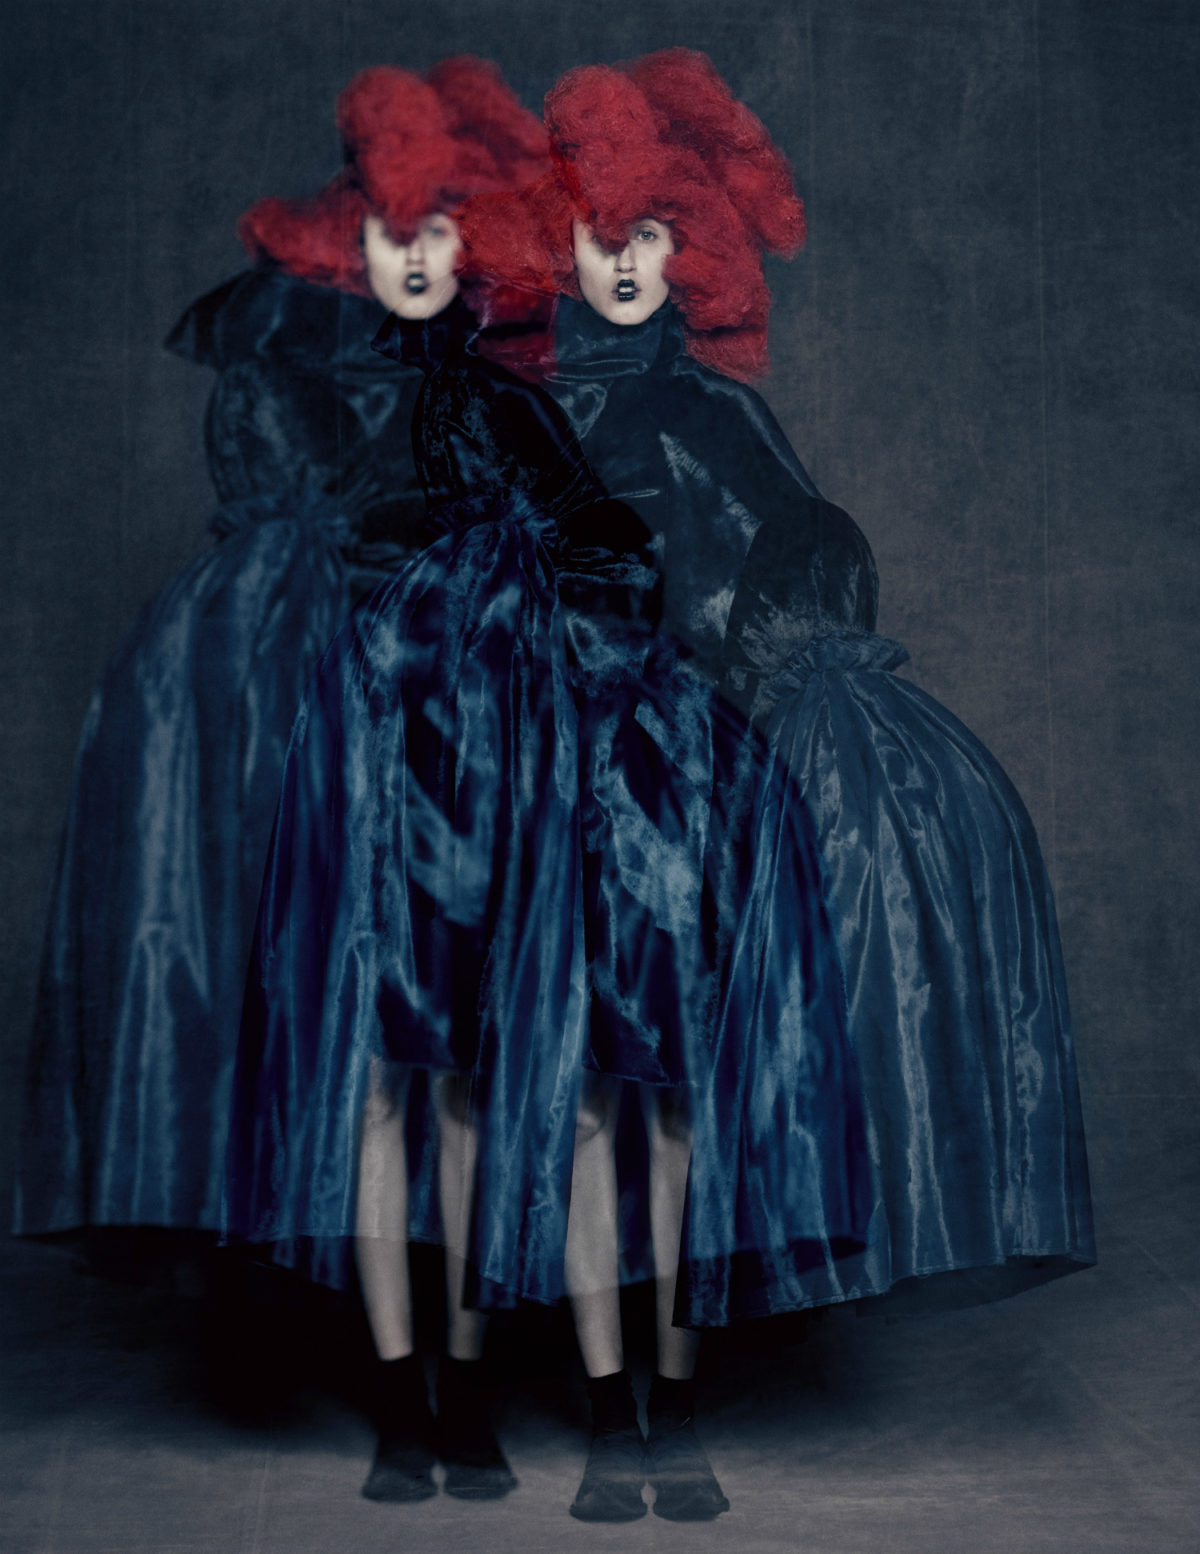 THE COMPLEXITY OF FEMININITY AS DISPLAYED BY REI KAWAKUBO